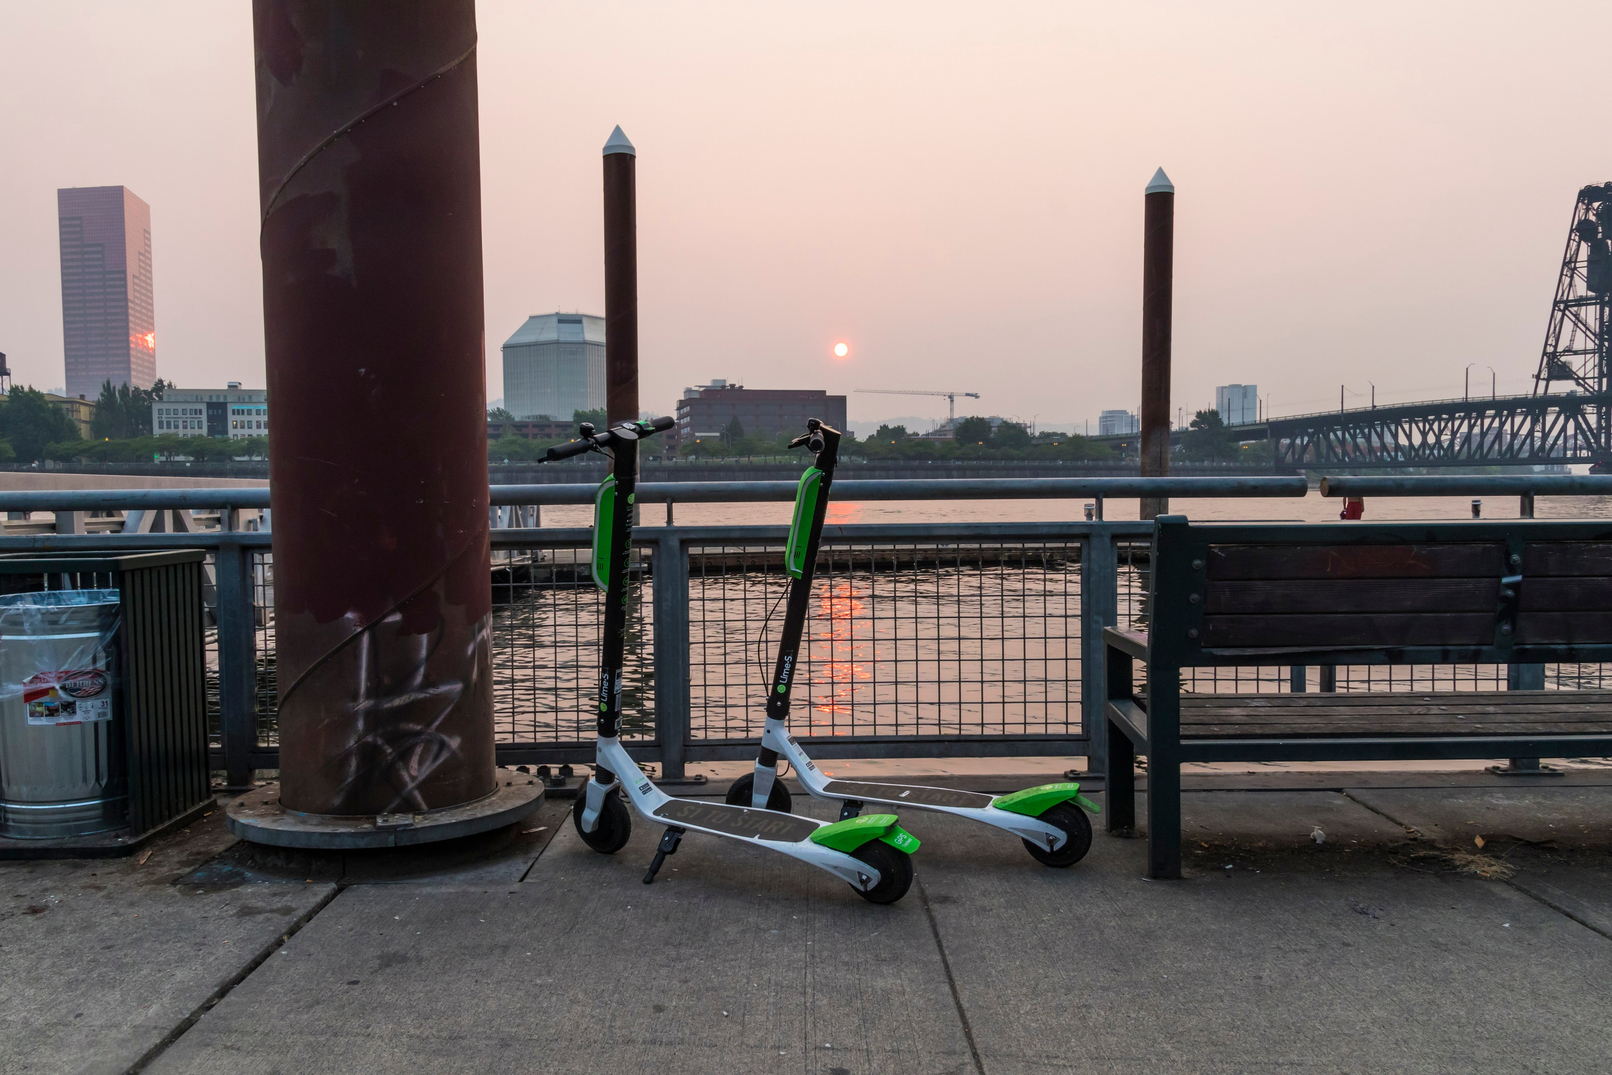 Safety Issues Alleged in Class Action Suit Against Lime and Bird Scooters